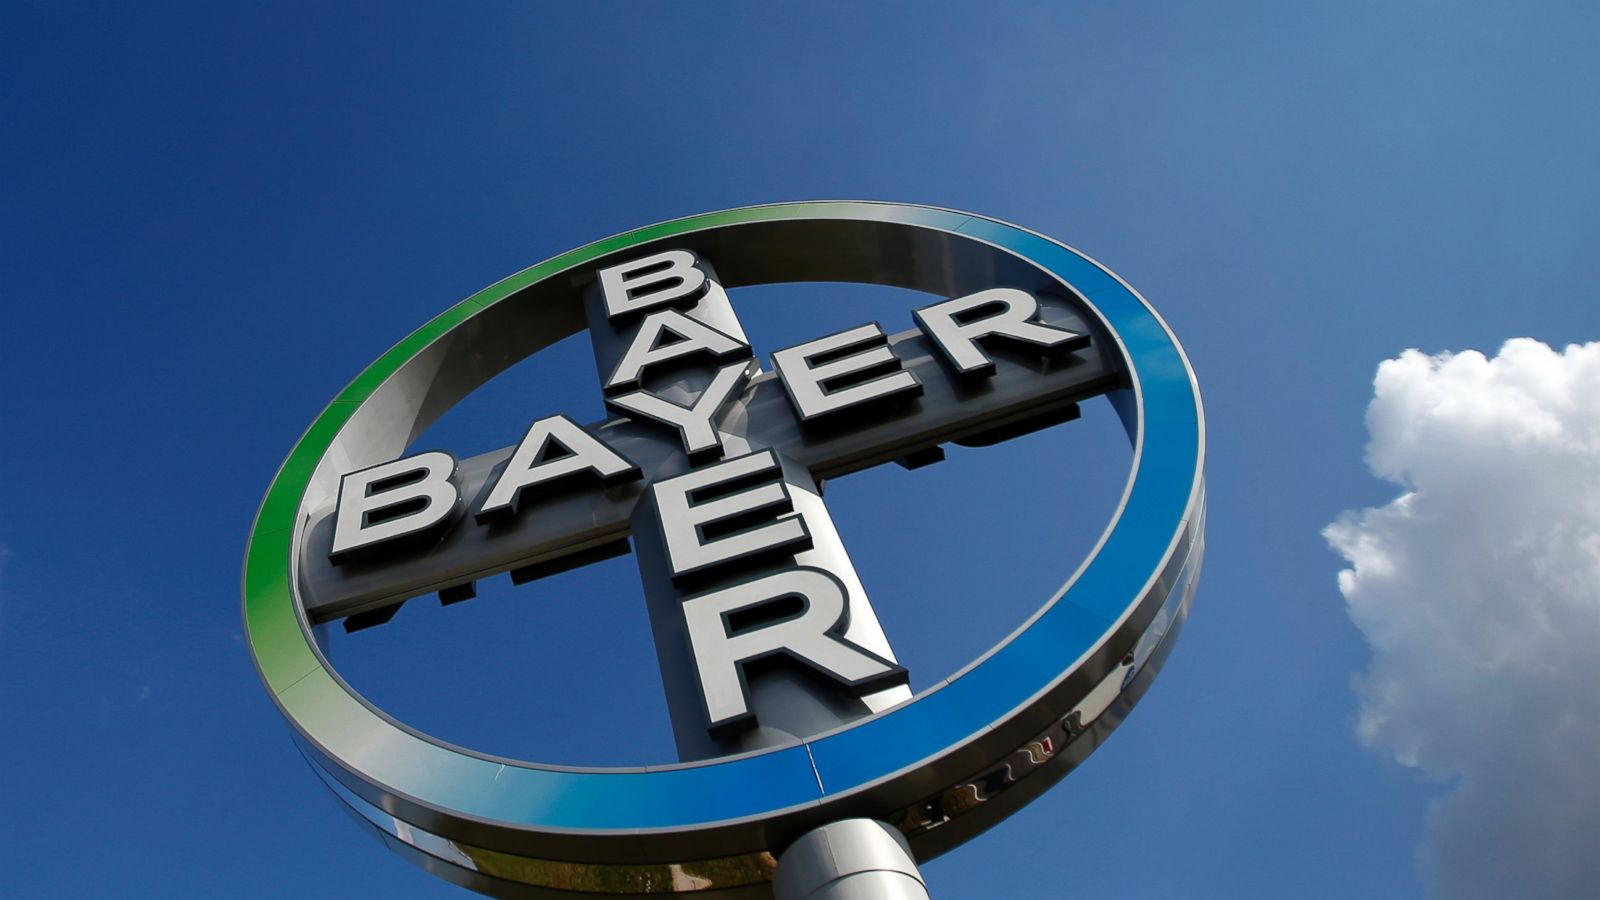 Germany Bayer Monsanto